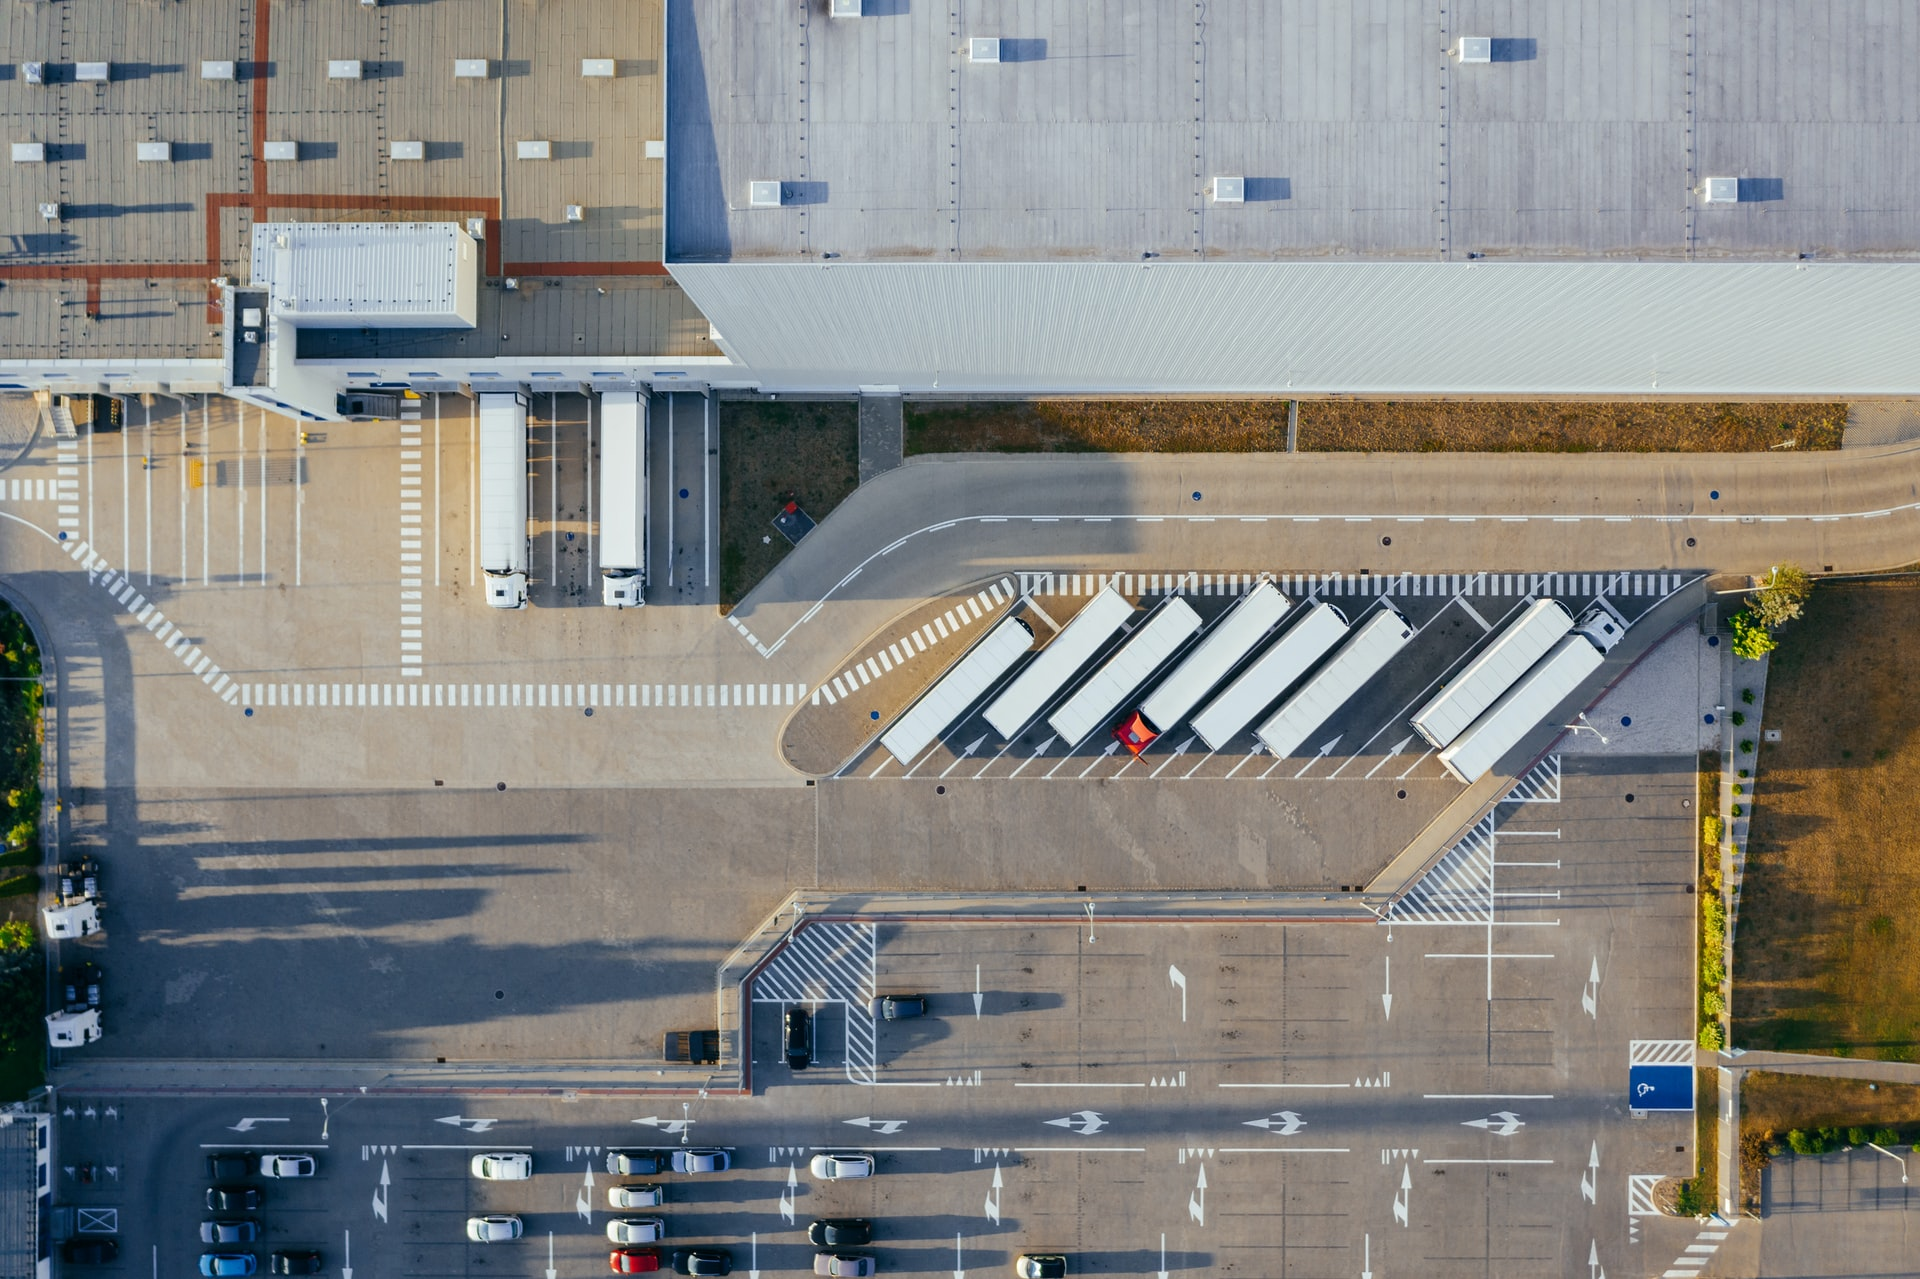 ariel view of trucks dropping off goods at warehouse